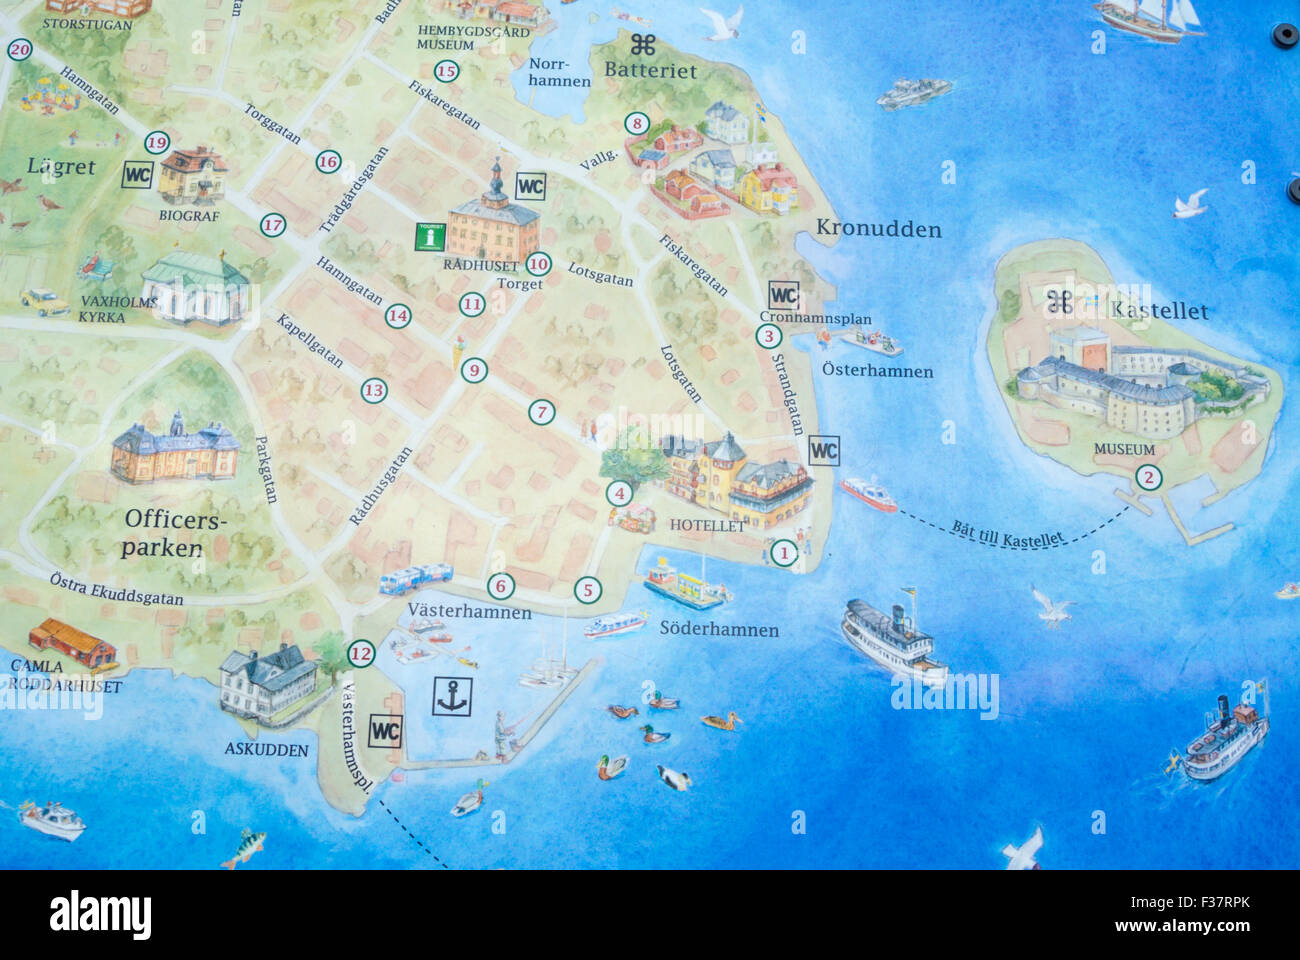 Map Of Vaxholm Near Stockholm Sweden Stock Photo Royalty Free - Sweden map search